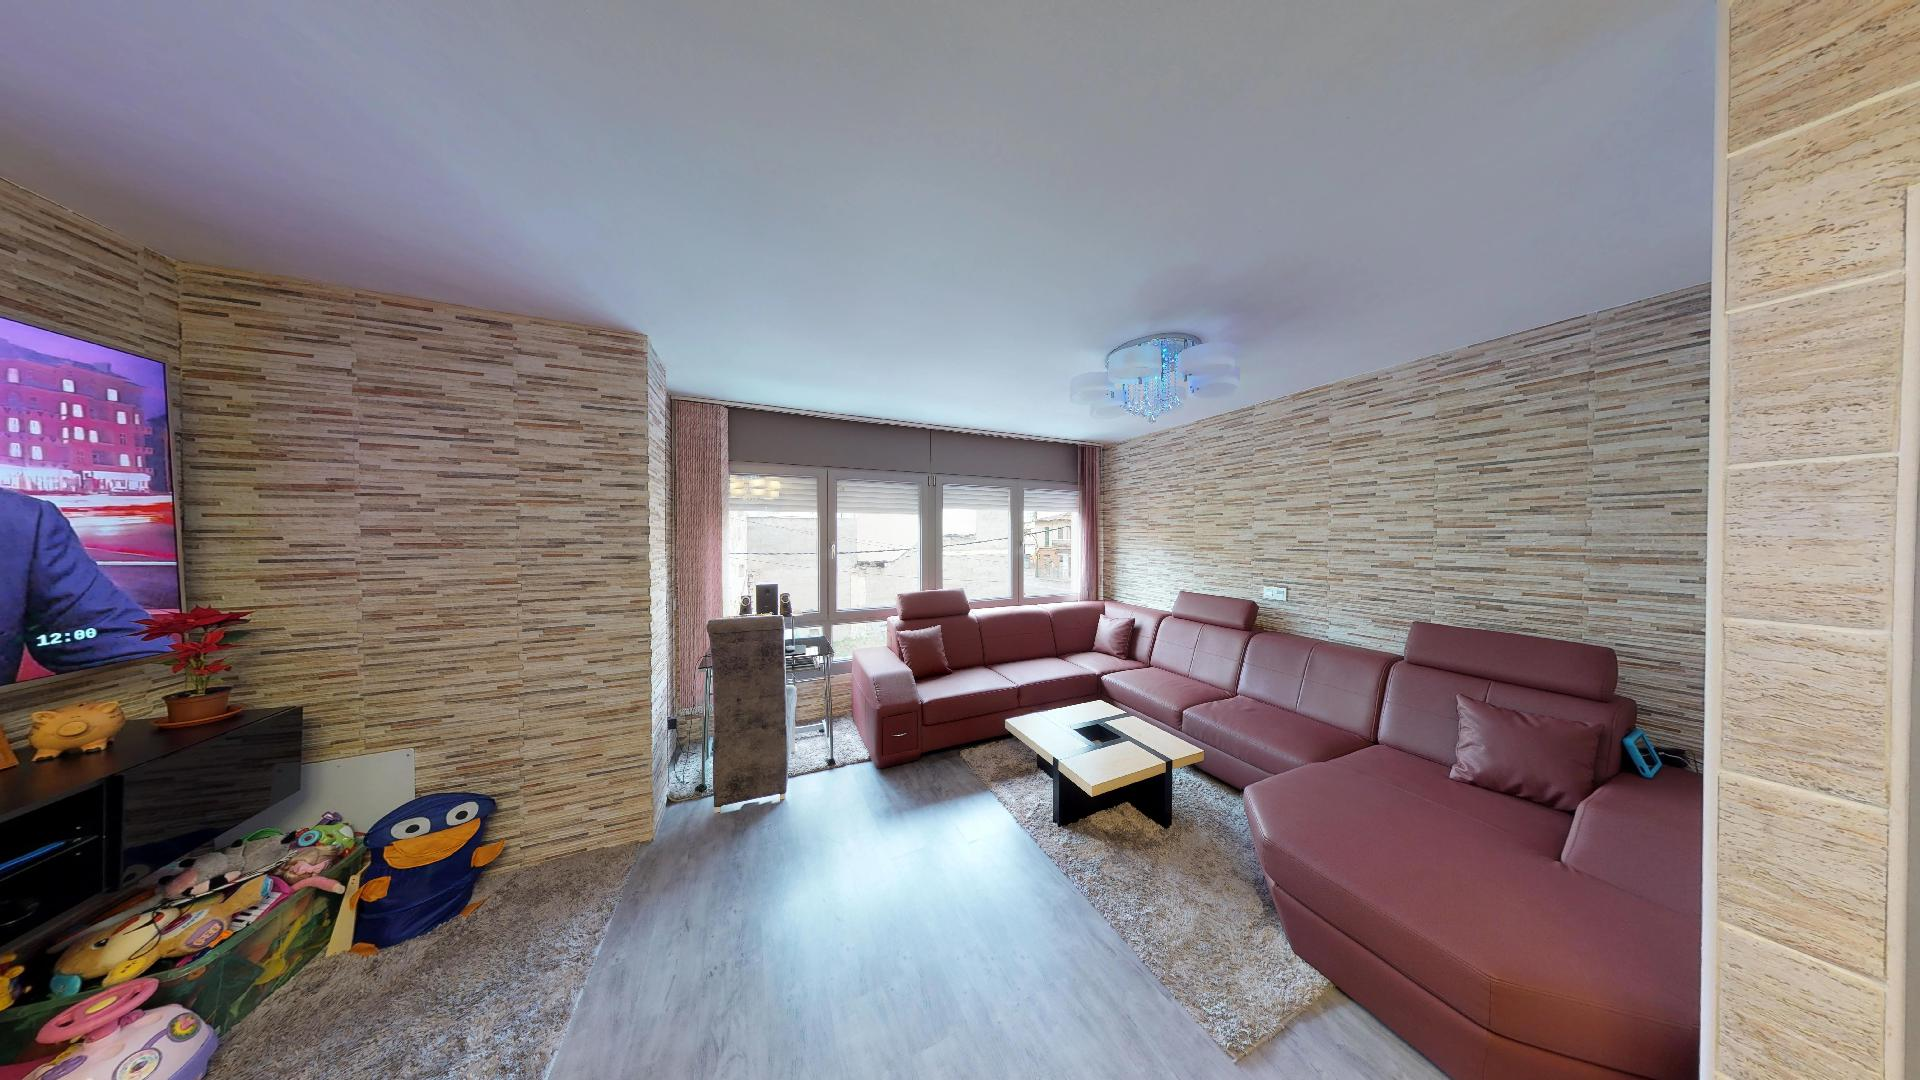 Apartment for rent in Aragon, Palma de Mallorca - Ra-Palma-365